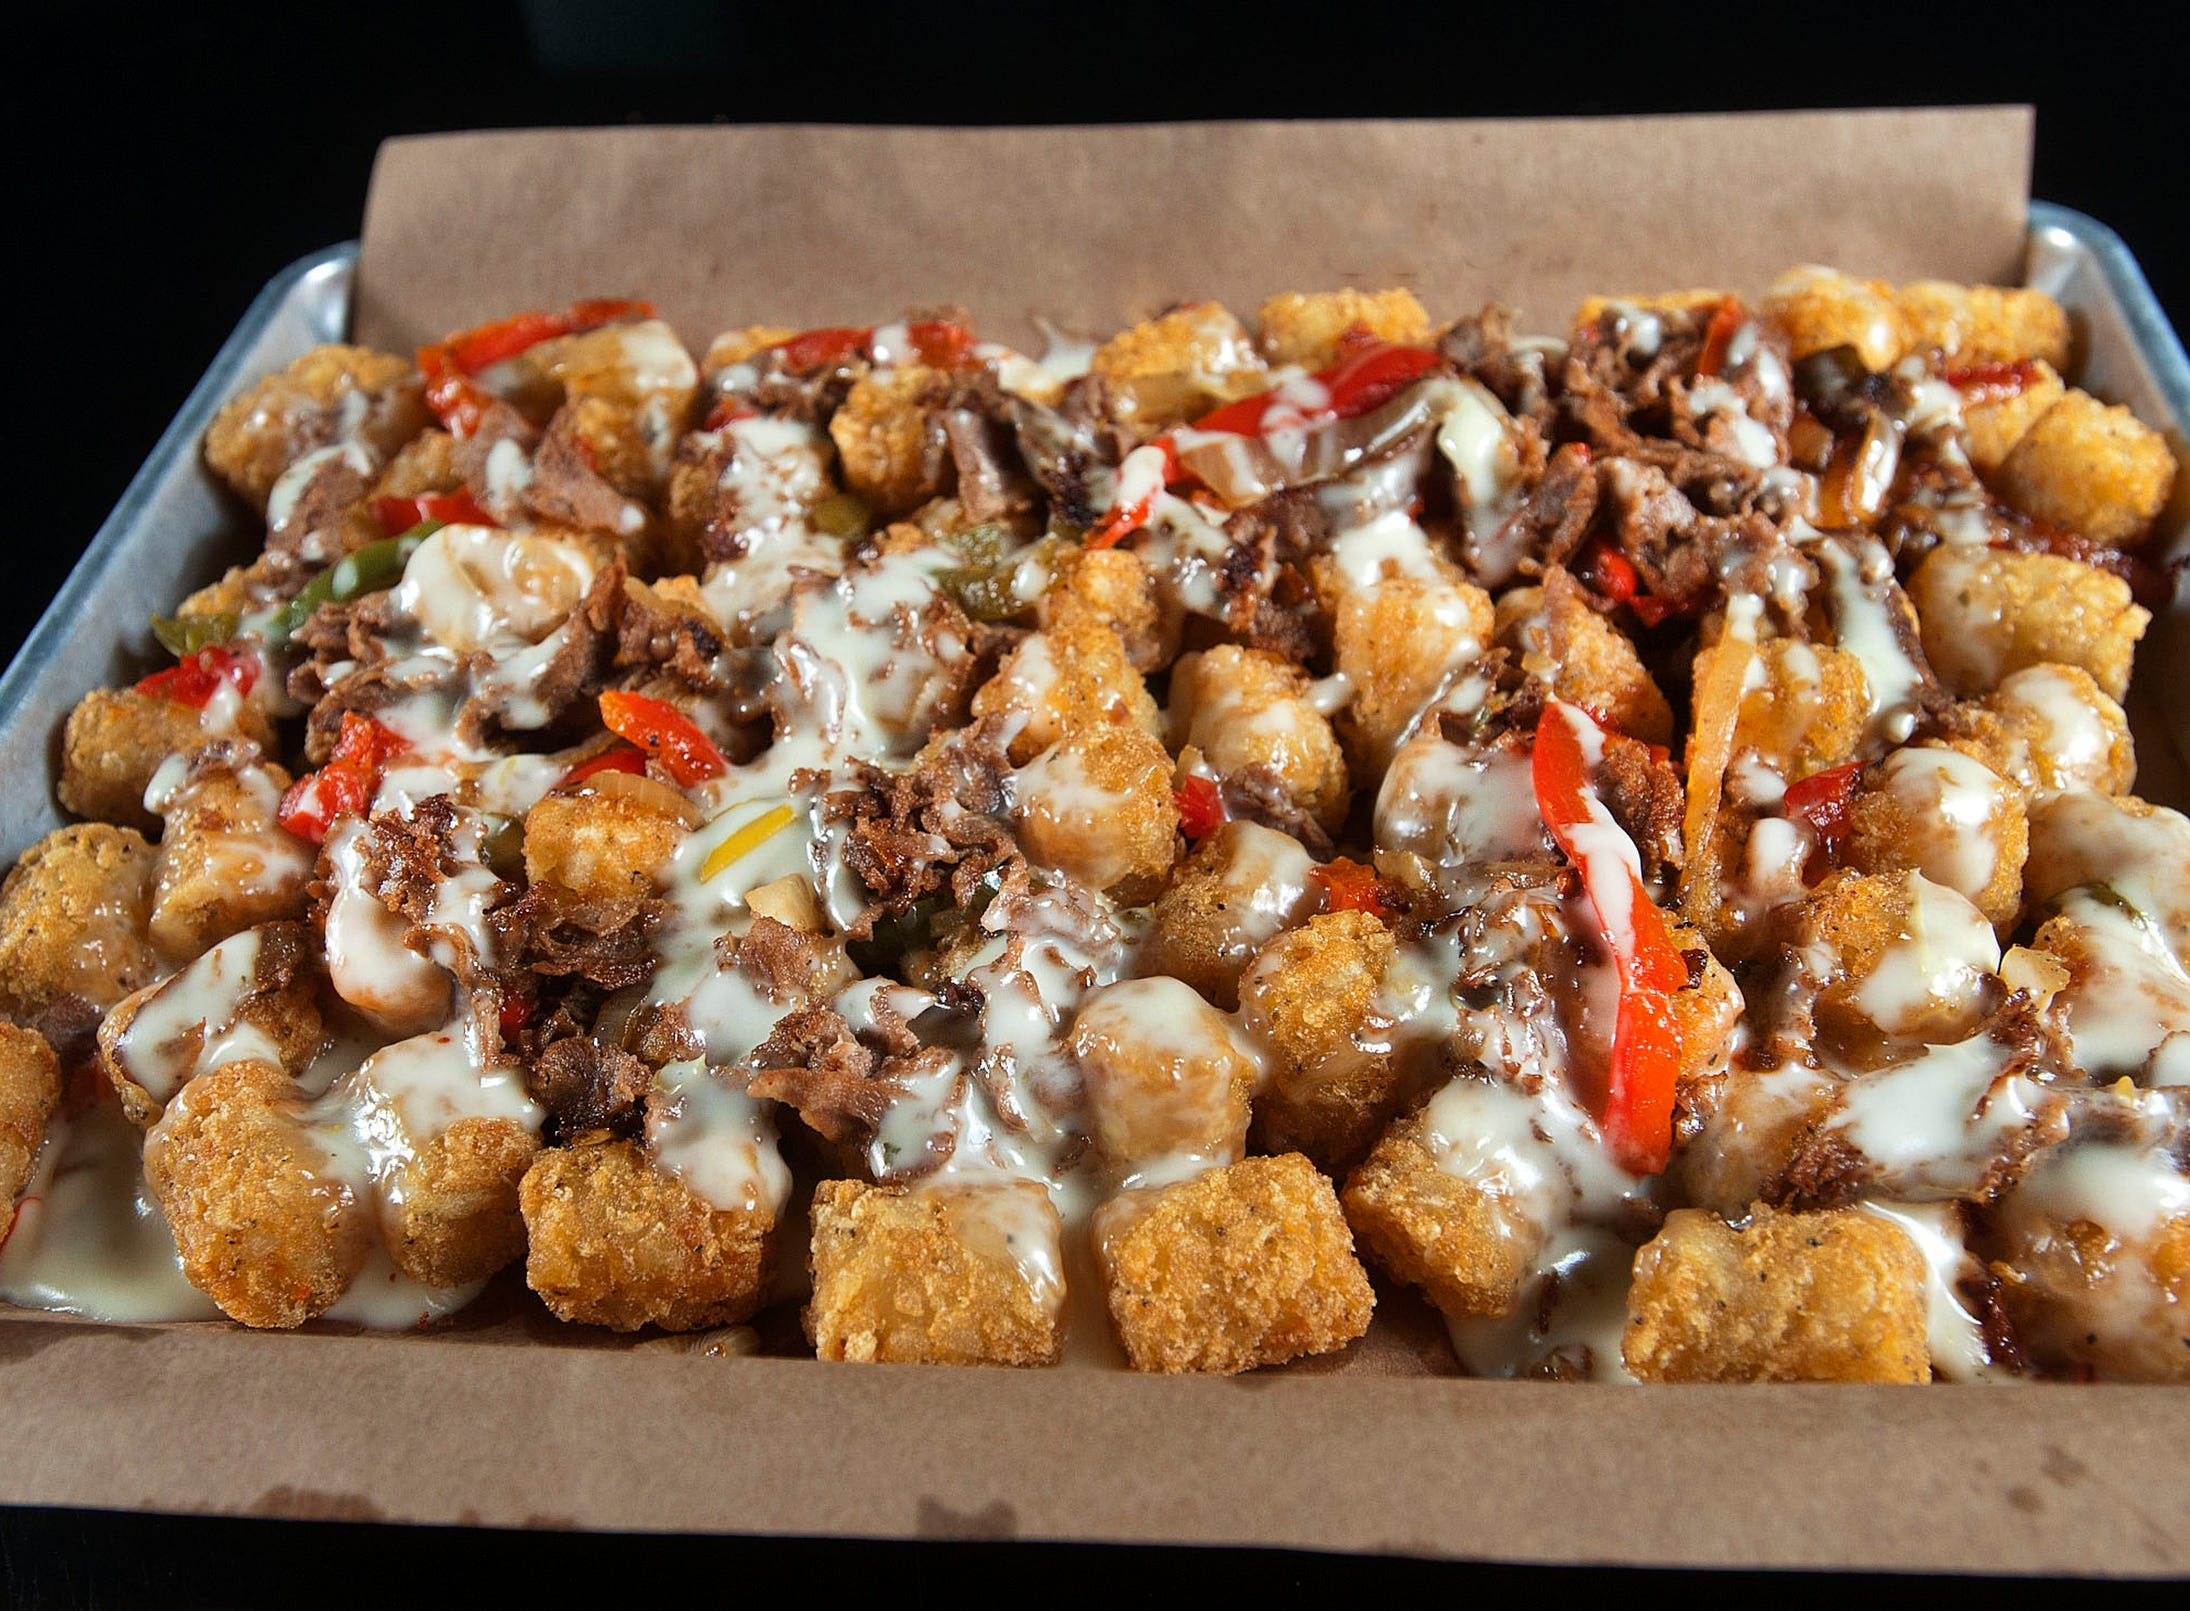 The Recbar's Always Sunny Totchos starts with tater tots that are deep fried then covered with nacho ingredients queso cheese, Philly steak pieces, and a mix of sauteed onion, green and red bell pepper bits.14 March 2019